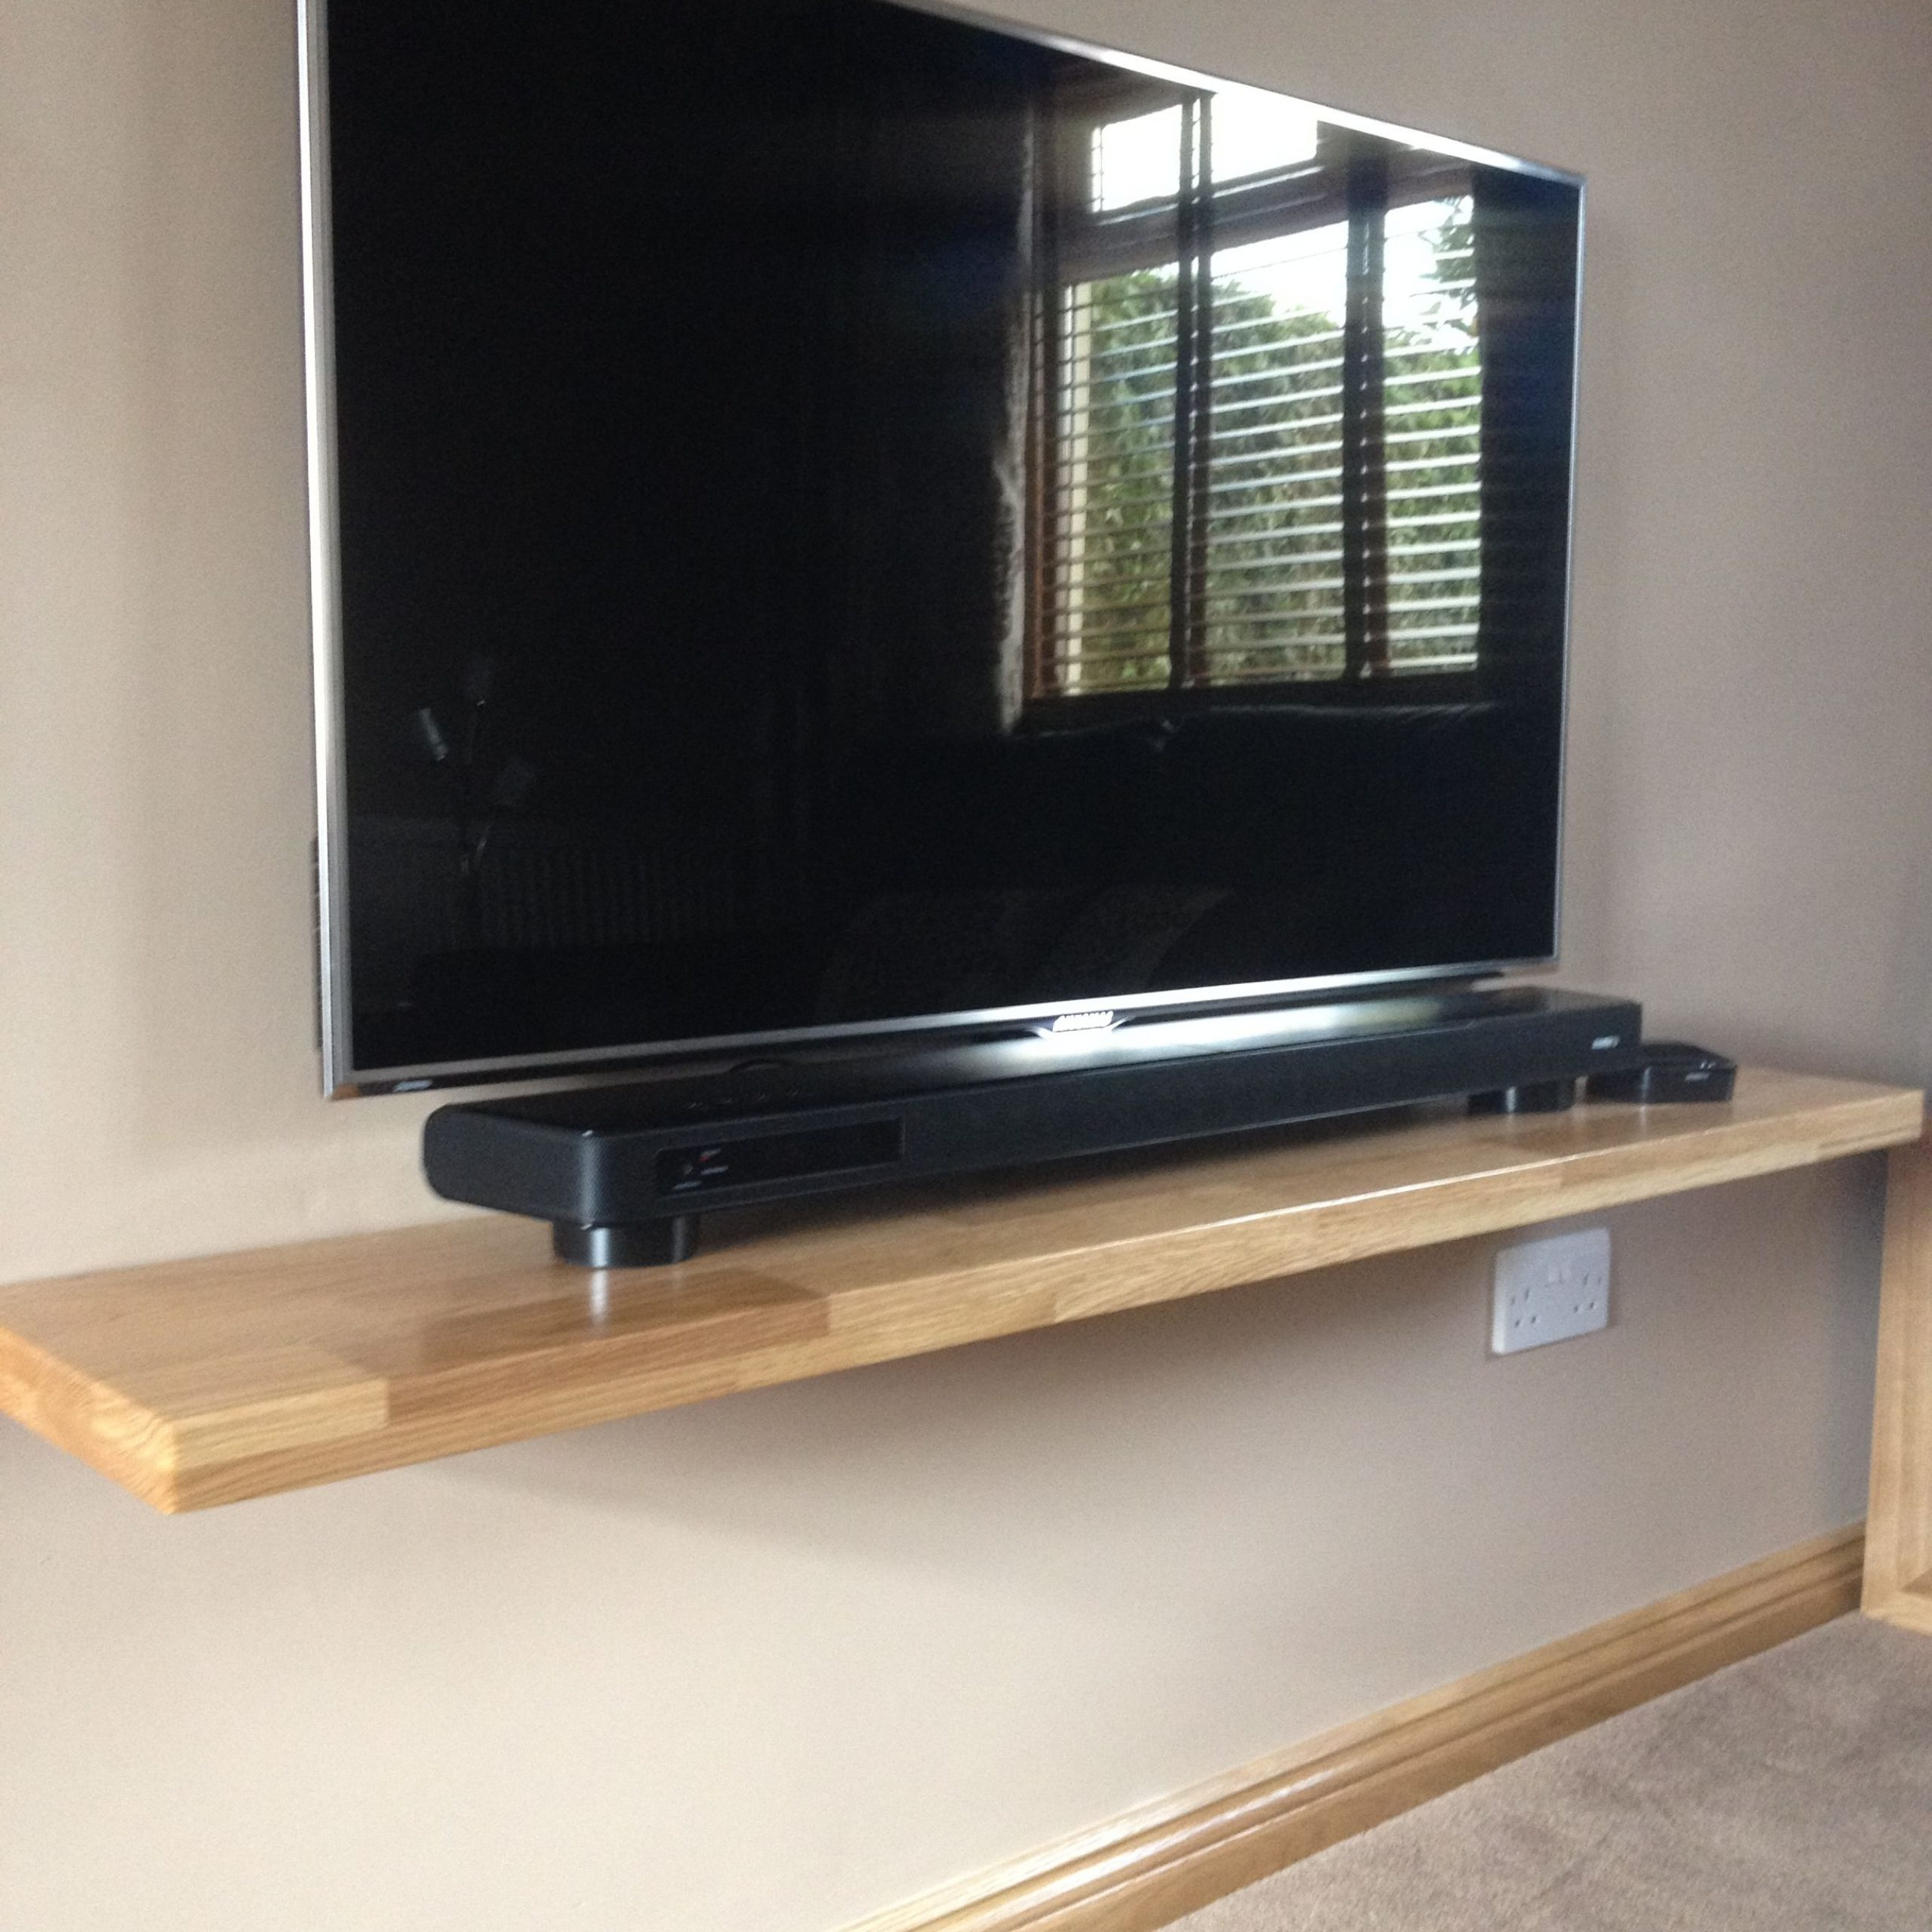 Shelf For Under Flat Screen Tv | Tyres2c With Regard To Horizontal Or Vertical Storage Shelf Tv Stands (View 13 of 20)